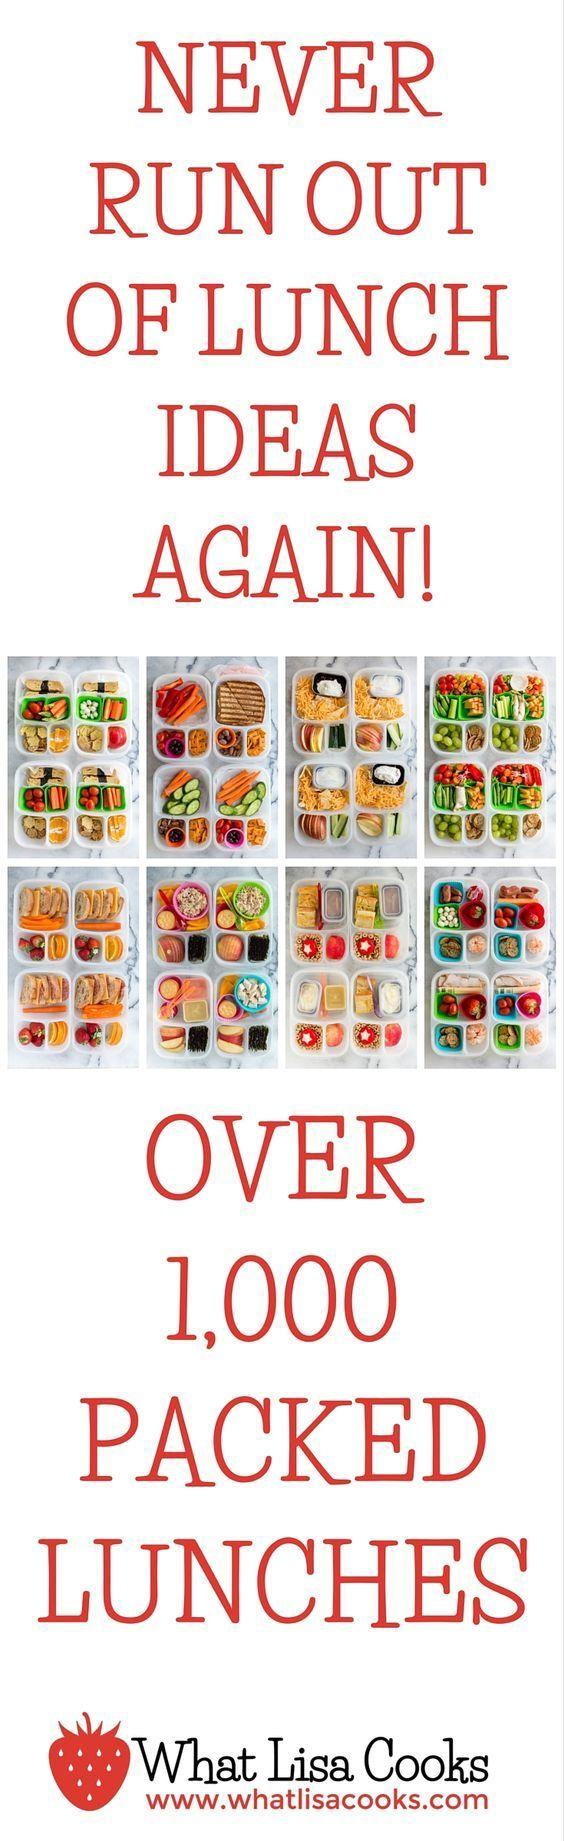 You will never run out of lunch ideas again! This page has over 1,000 packed lunches.